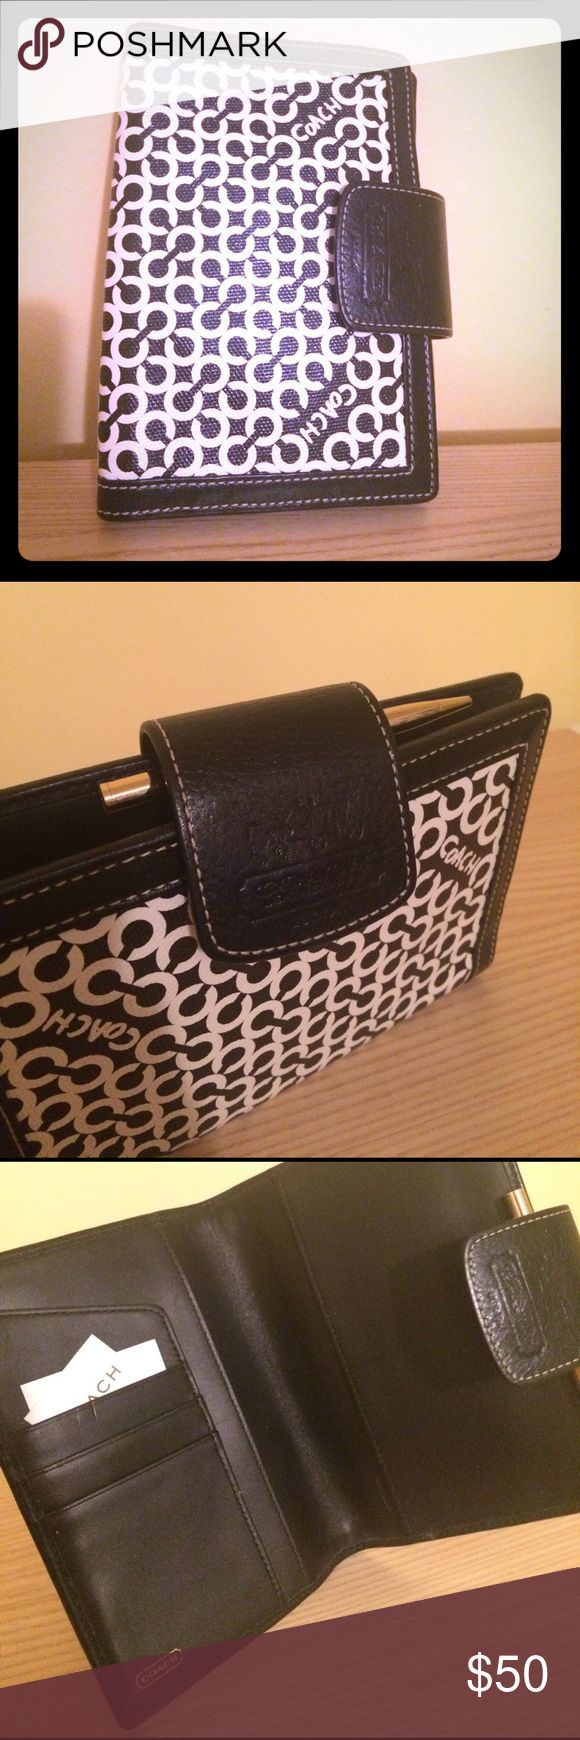 Coach planner cover Super cute planner, black and white Coach pattern, great size to stick in your purse! Does not include the current calendar year insert. Original pen included, very gently used, would make an amazing gift! Coach Other